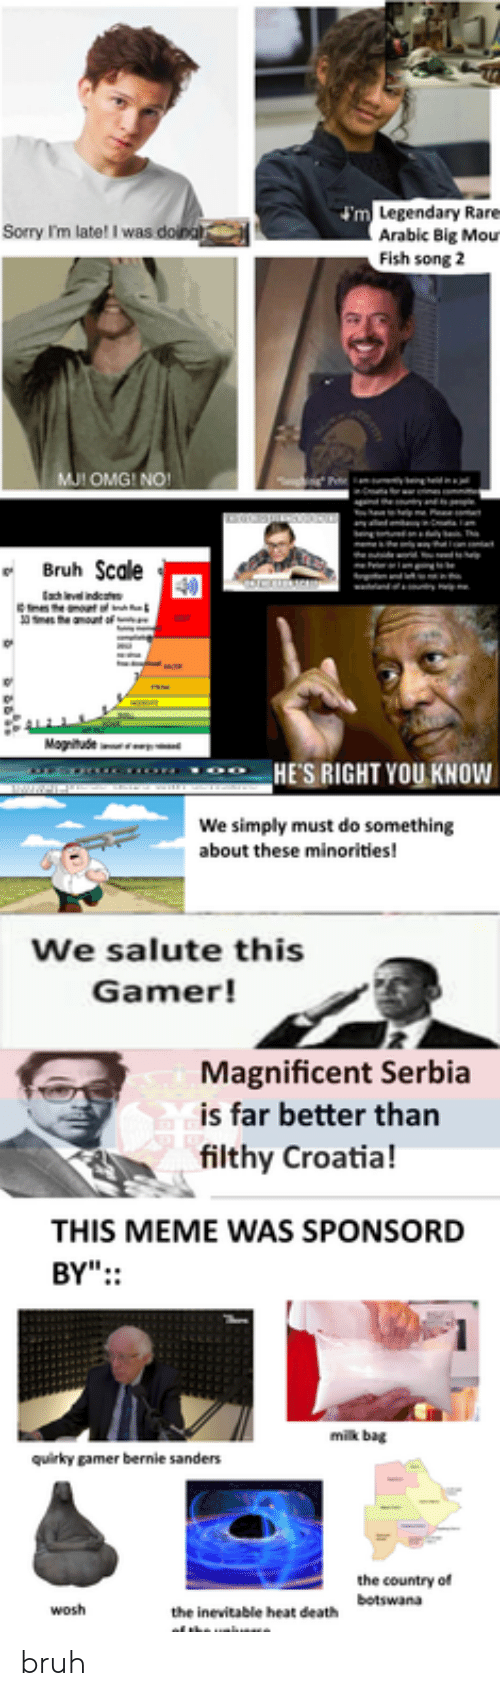 """Bernie Sanders, Bruh, and Meme: m Legendary Rare  Arabic Big Mou  Fish song 2  Sorry I'm late! I was doina  MJI OMG! NO!  ng  Bruh Scale  Fr  m  e anount of  Magitude  HE'S RIGHT YOU KNOWw  We simply must do something  about these minorities!  We salute this  Gamer!  Magnificent Serbia  is far better than  filthy Croatia!  THIS MEME WAS SPONSORD  BY"""":  milk bag  quirky gamer bernie sanders  the country of  the inevitable heat de  of the unuae  botswana  wosh bruh"""